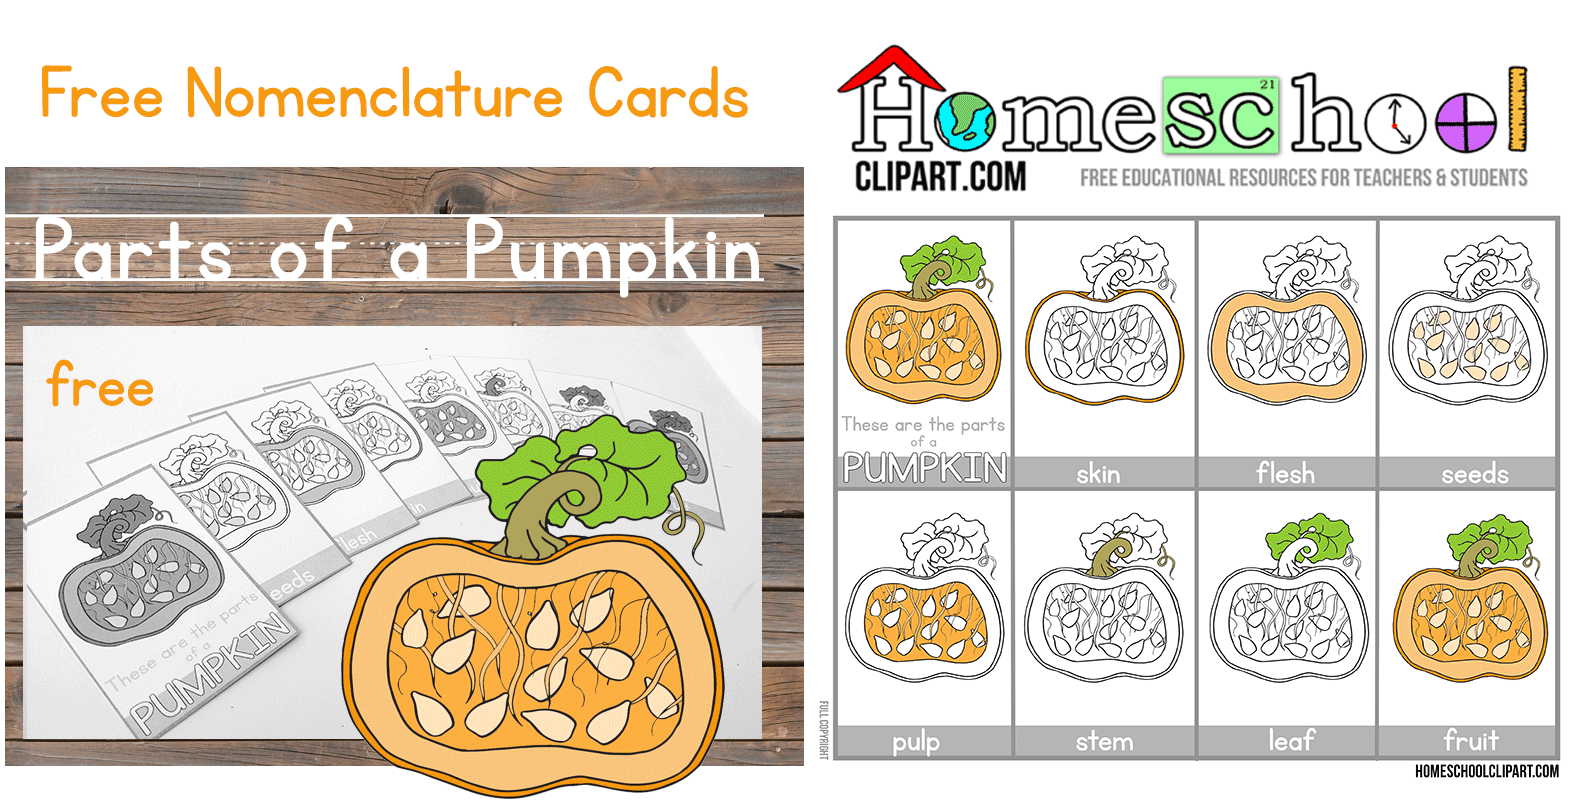 worksheet Parts Of A Pumpkin Worksheet parts of a pumpkin montessori cards pumpkincardsheader